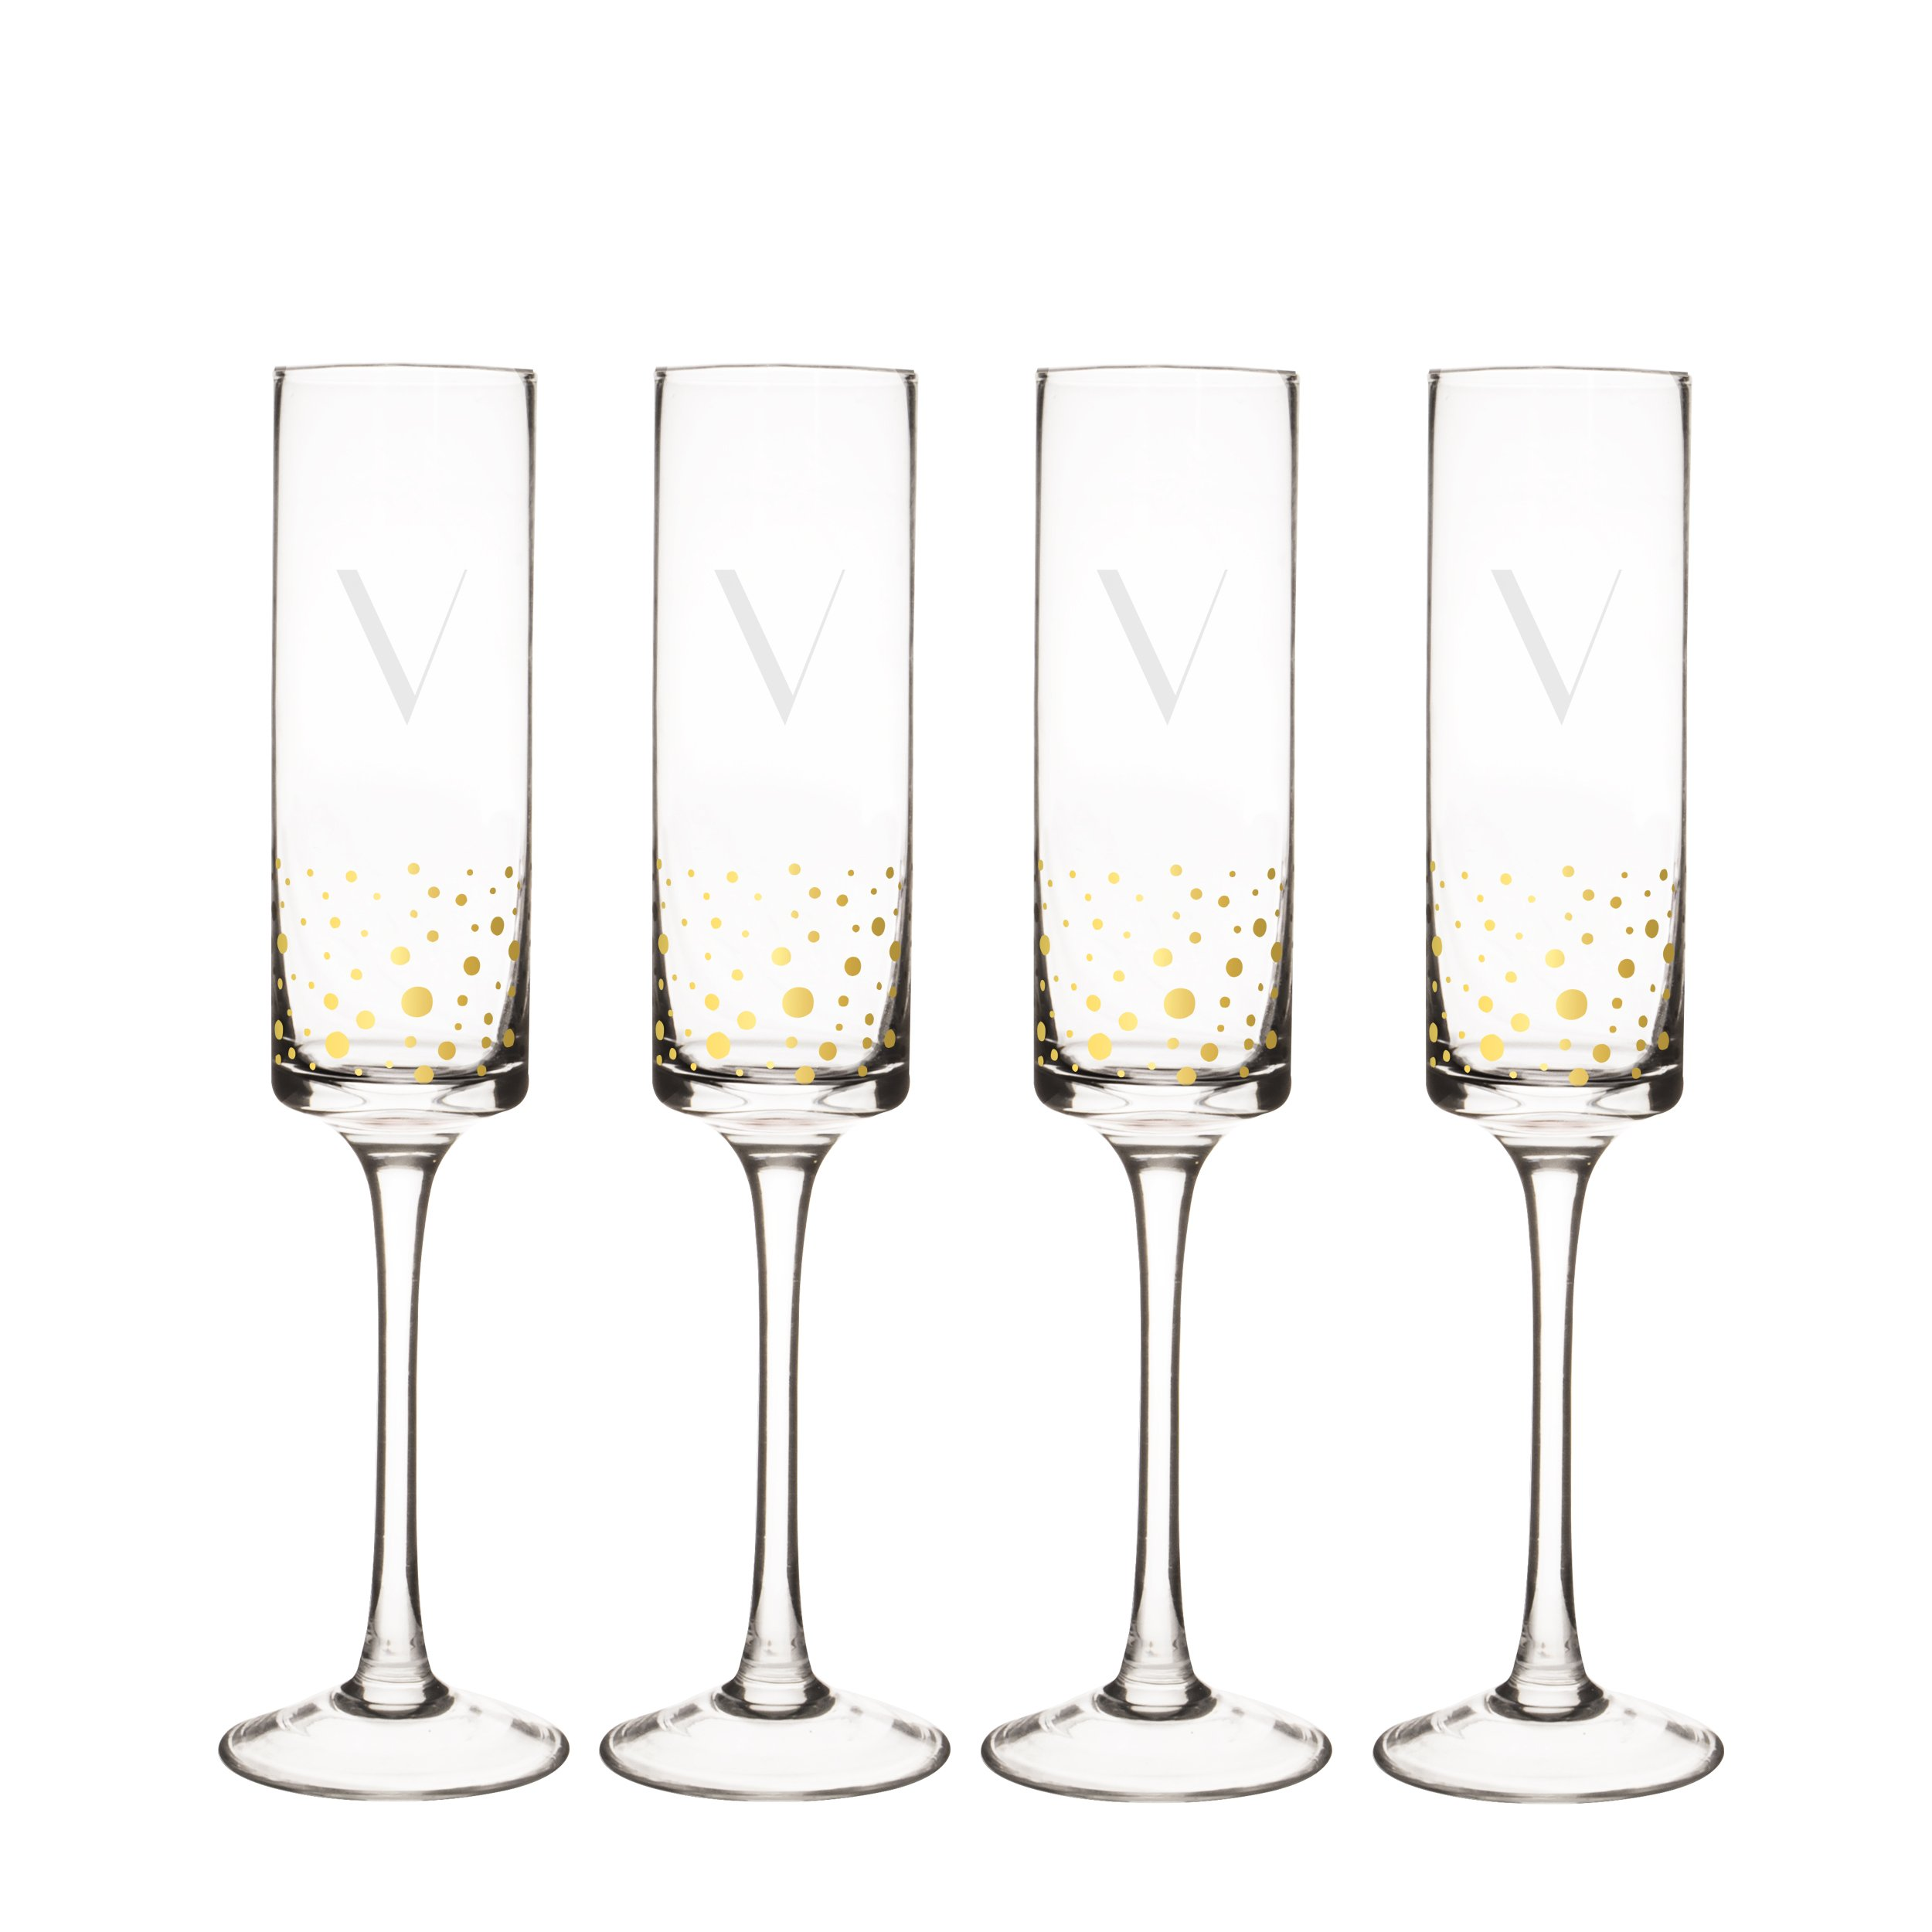 Cathy's Concepts GD3668-4-V Personalized Gold Dot Contemporary Champagne Flutes (Set of 4), Clear